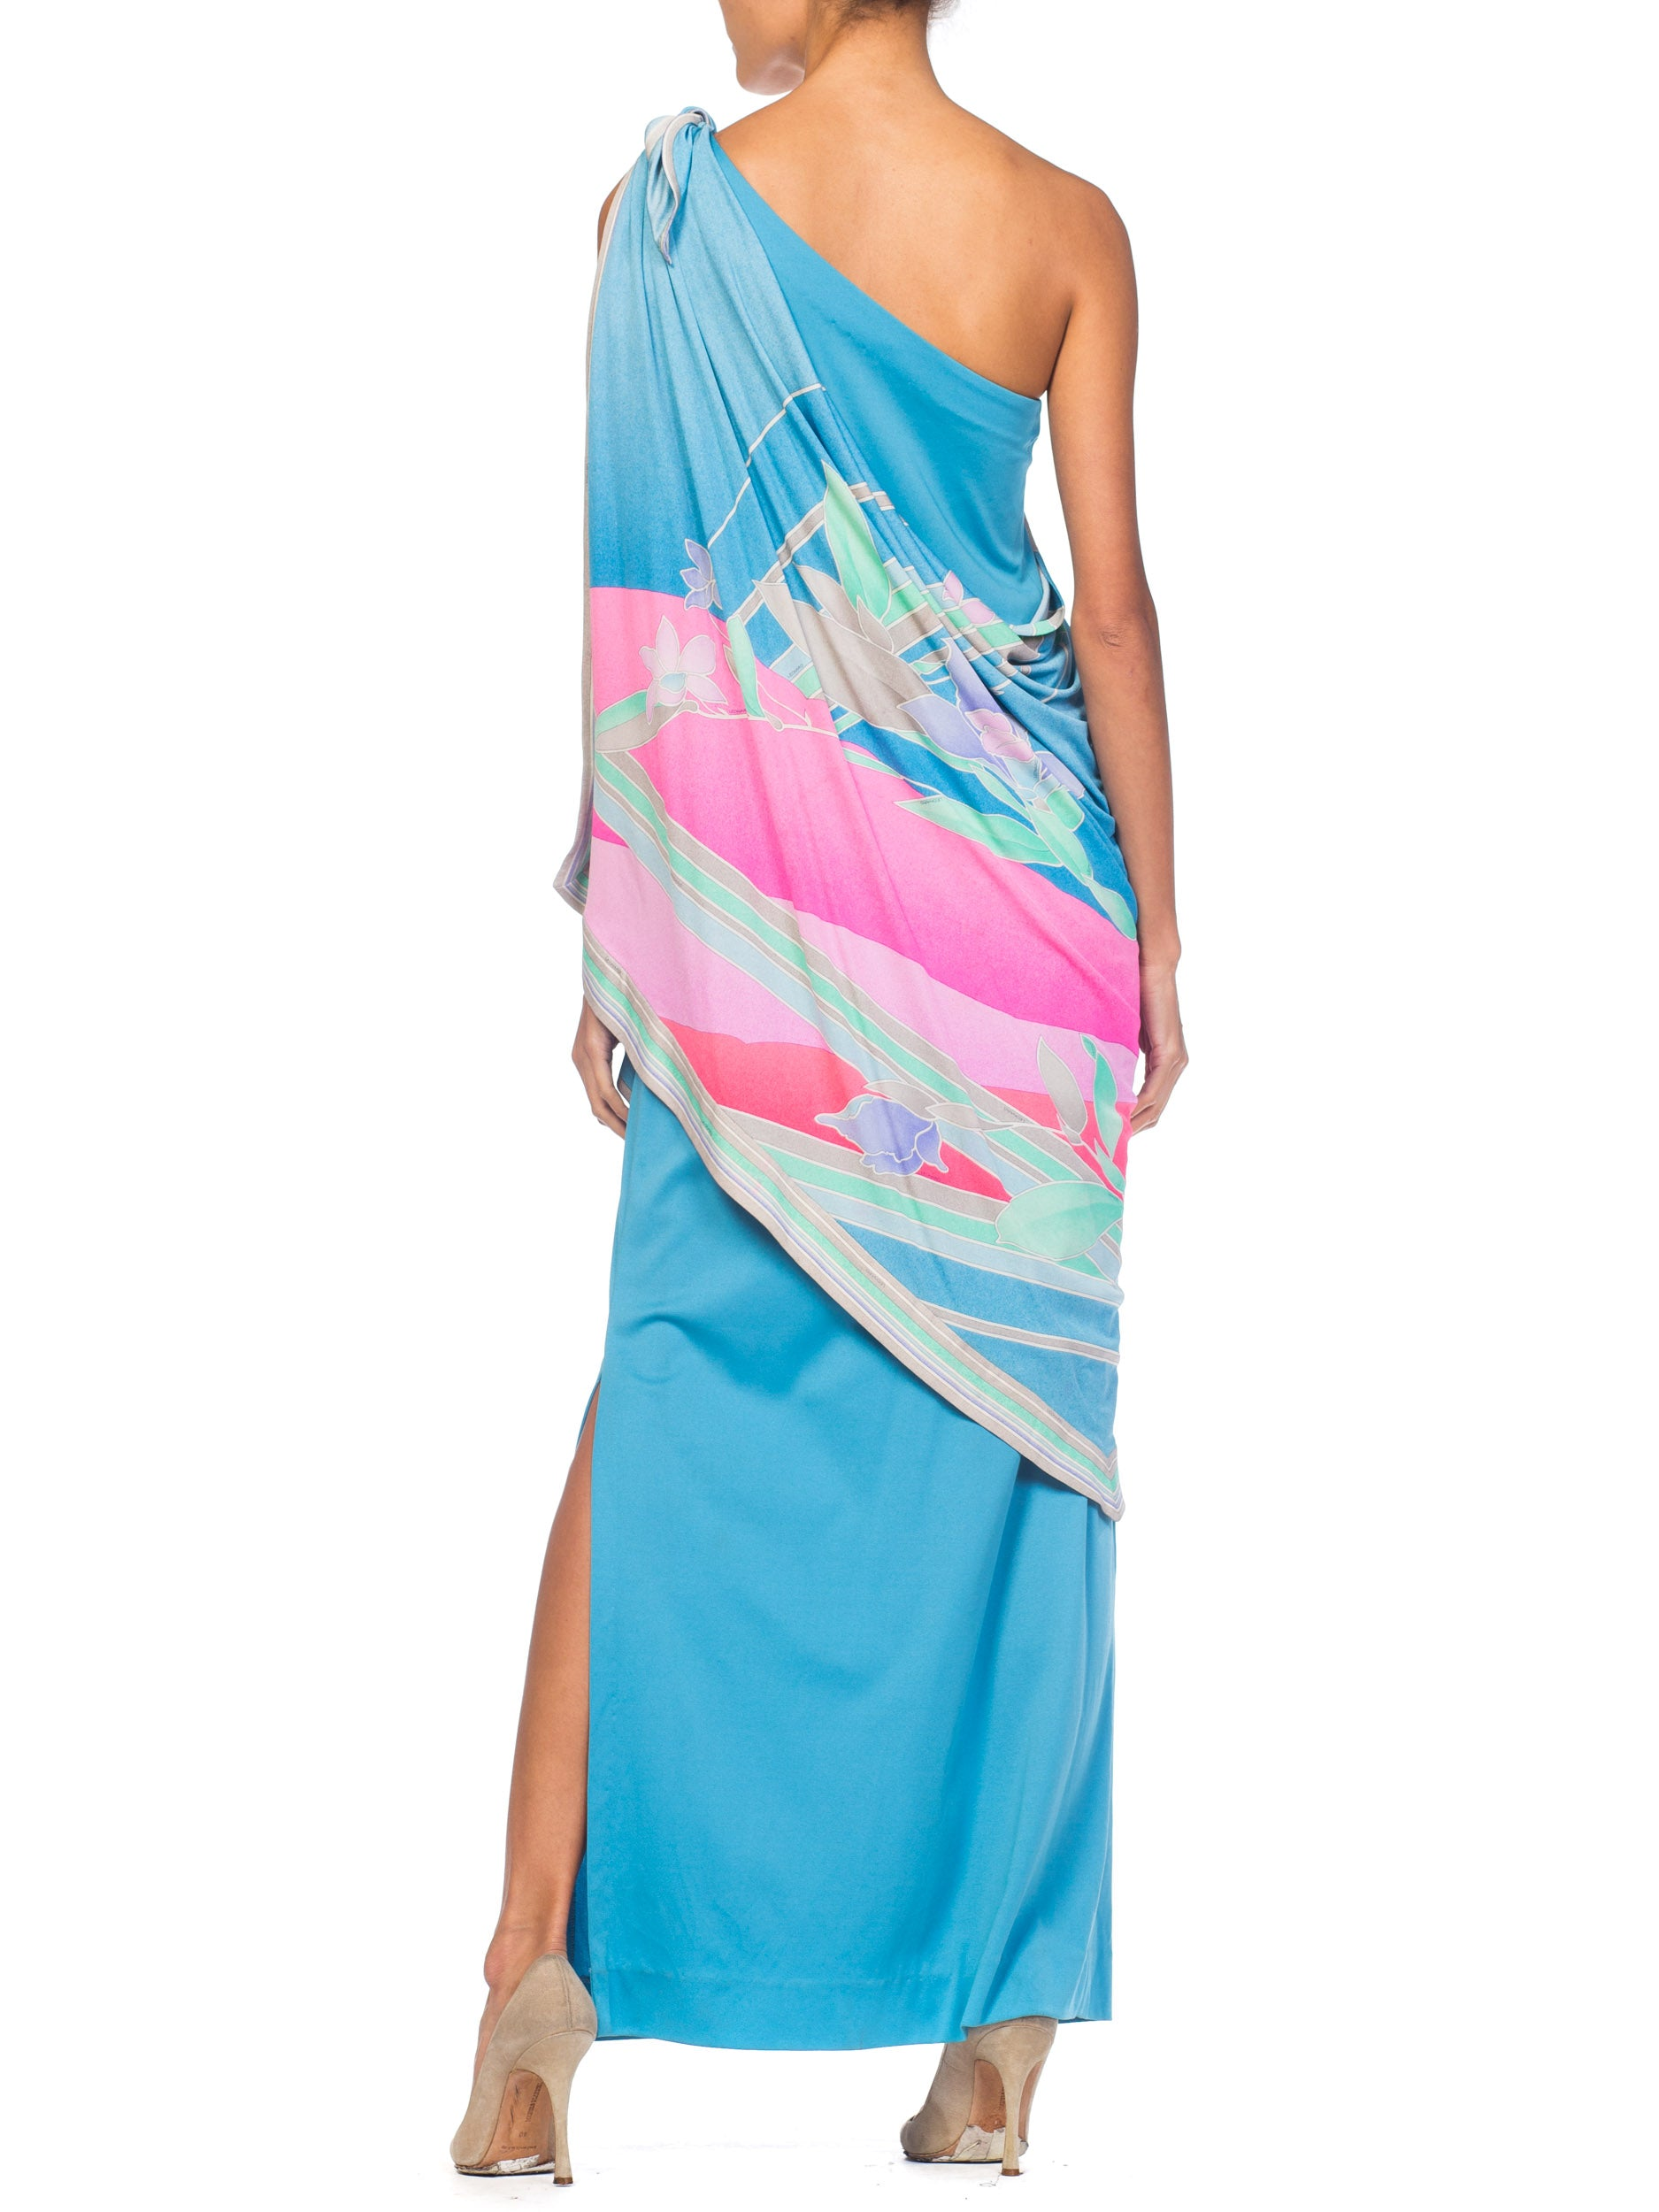 1970S LEONARD Aqua & Pink Silk Jersey Draped One Shoulder Tropical Floral Gown